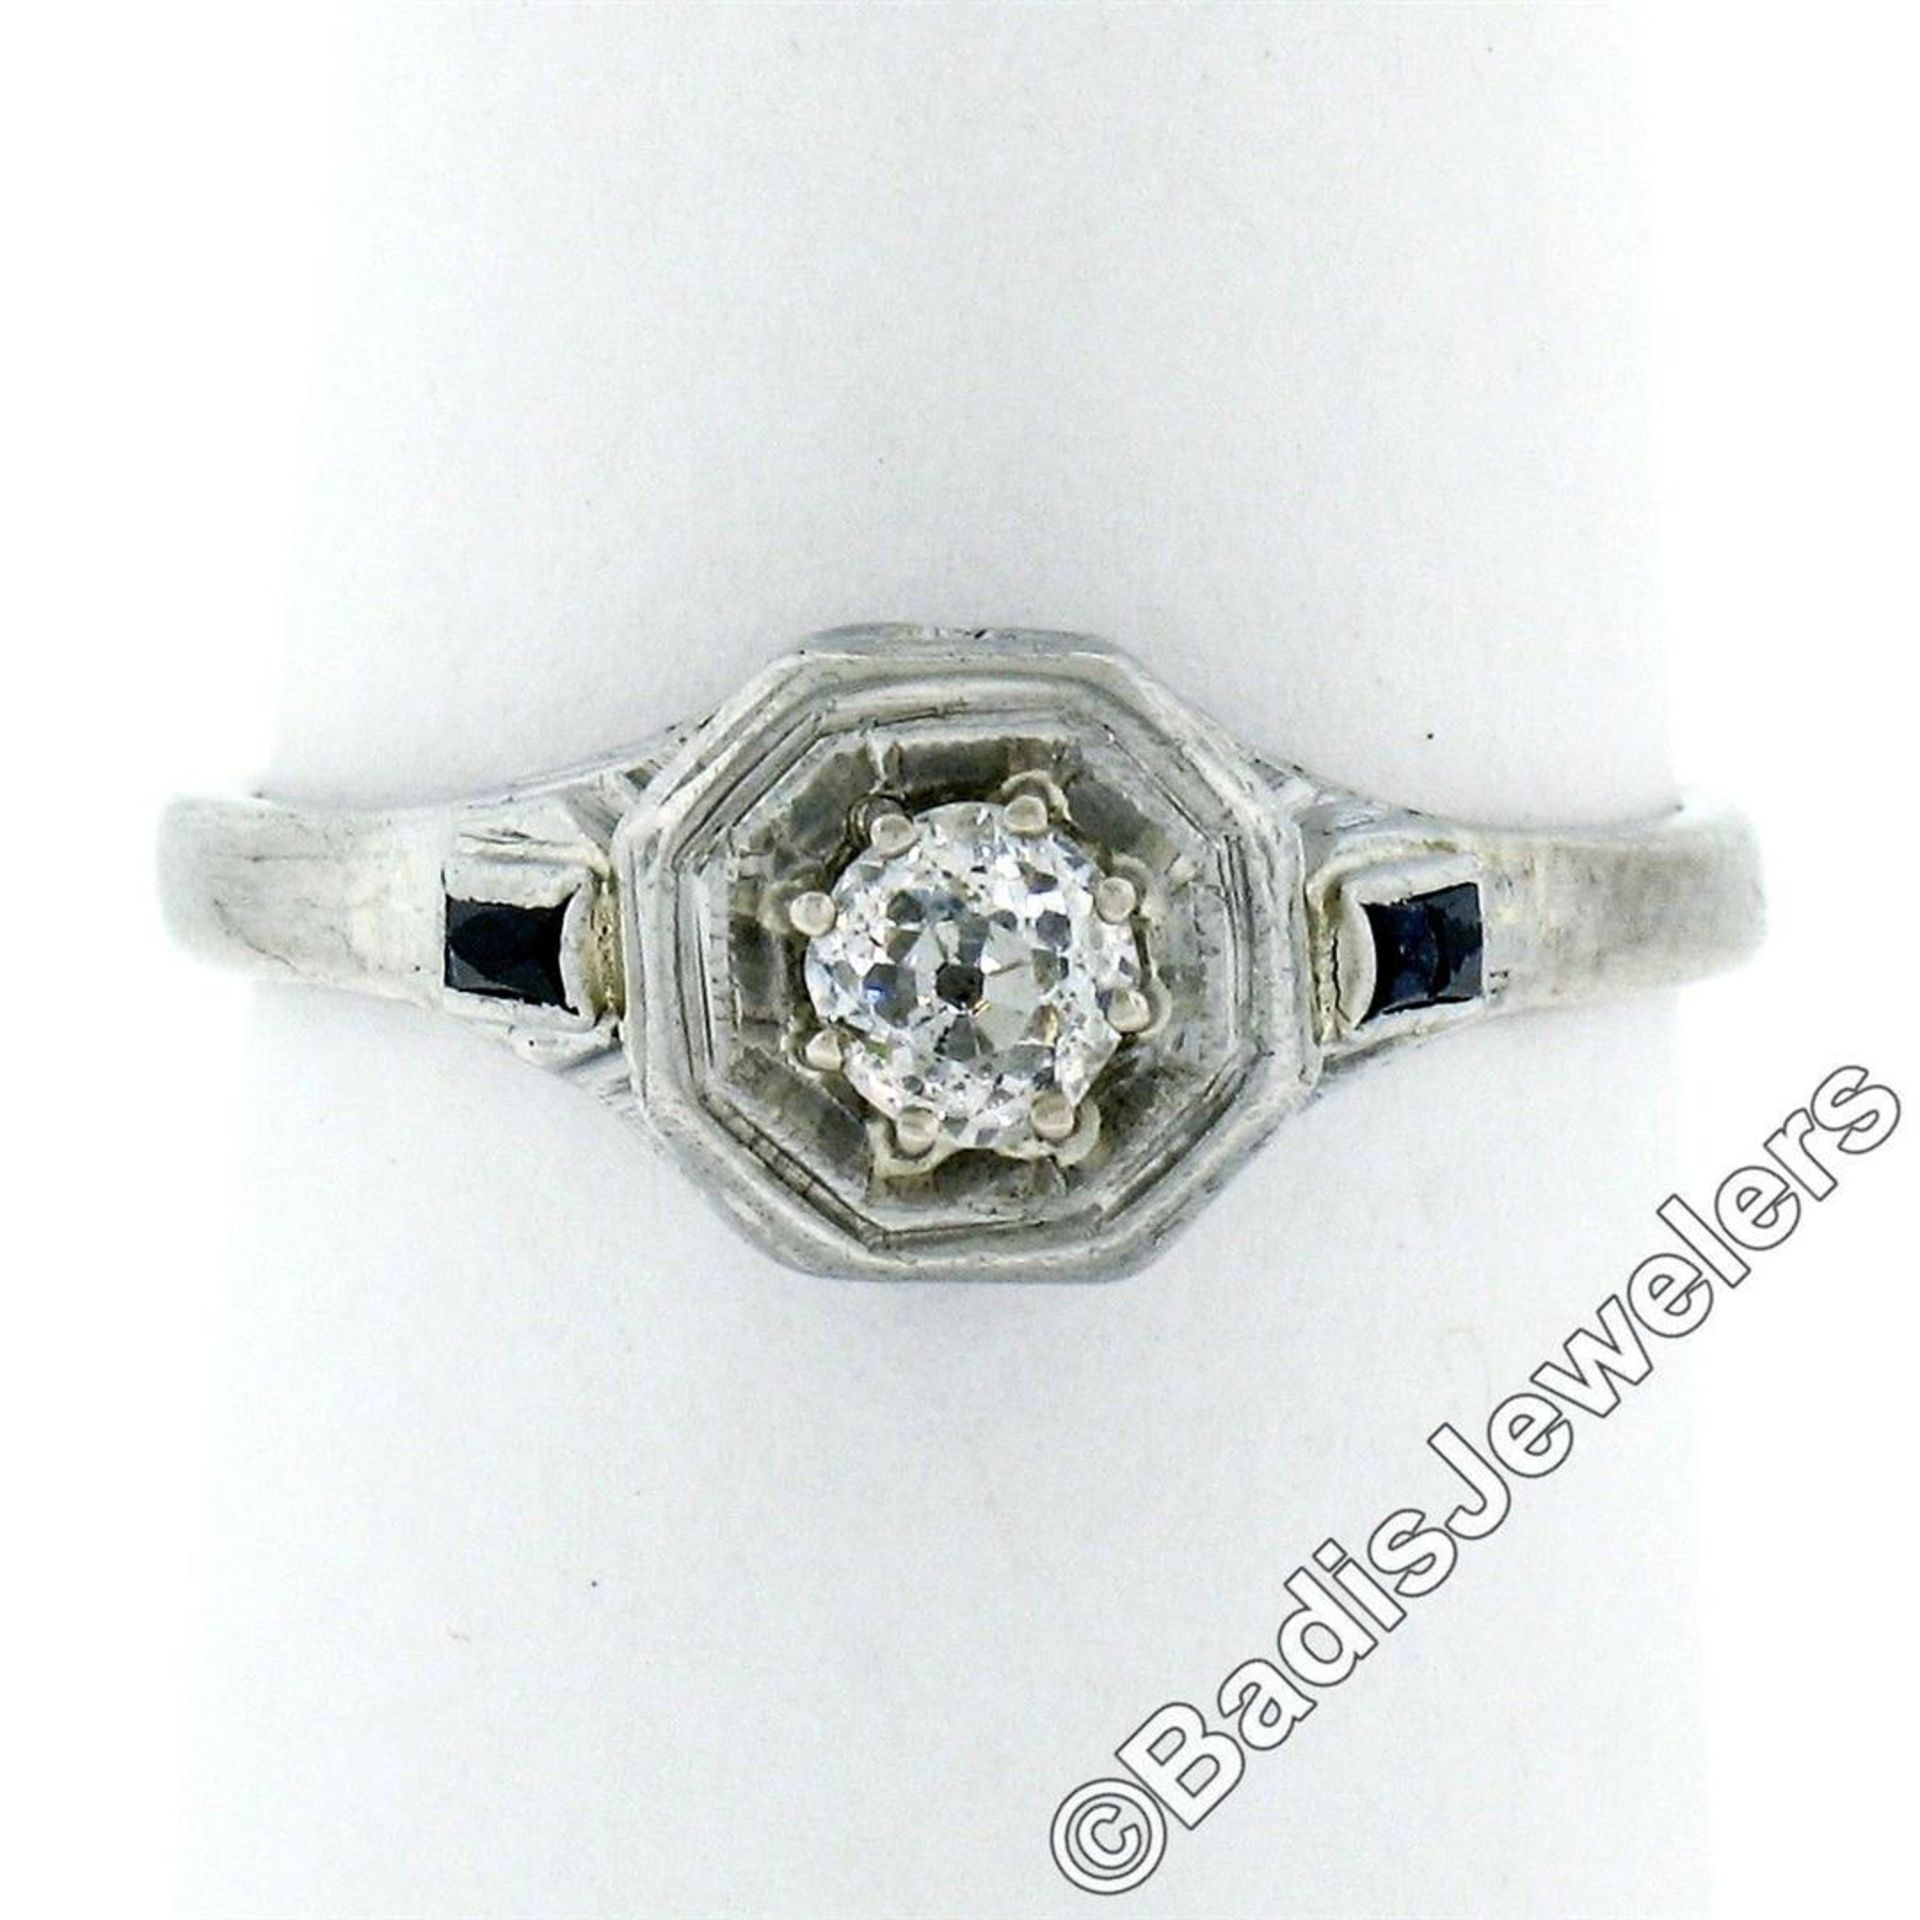 Art Deco 14kt White Gold 0.28ct Diamond Solitaire Engagement Ring - Image 4 of 7